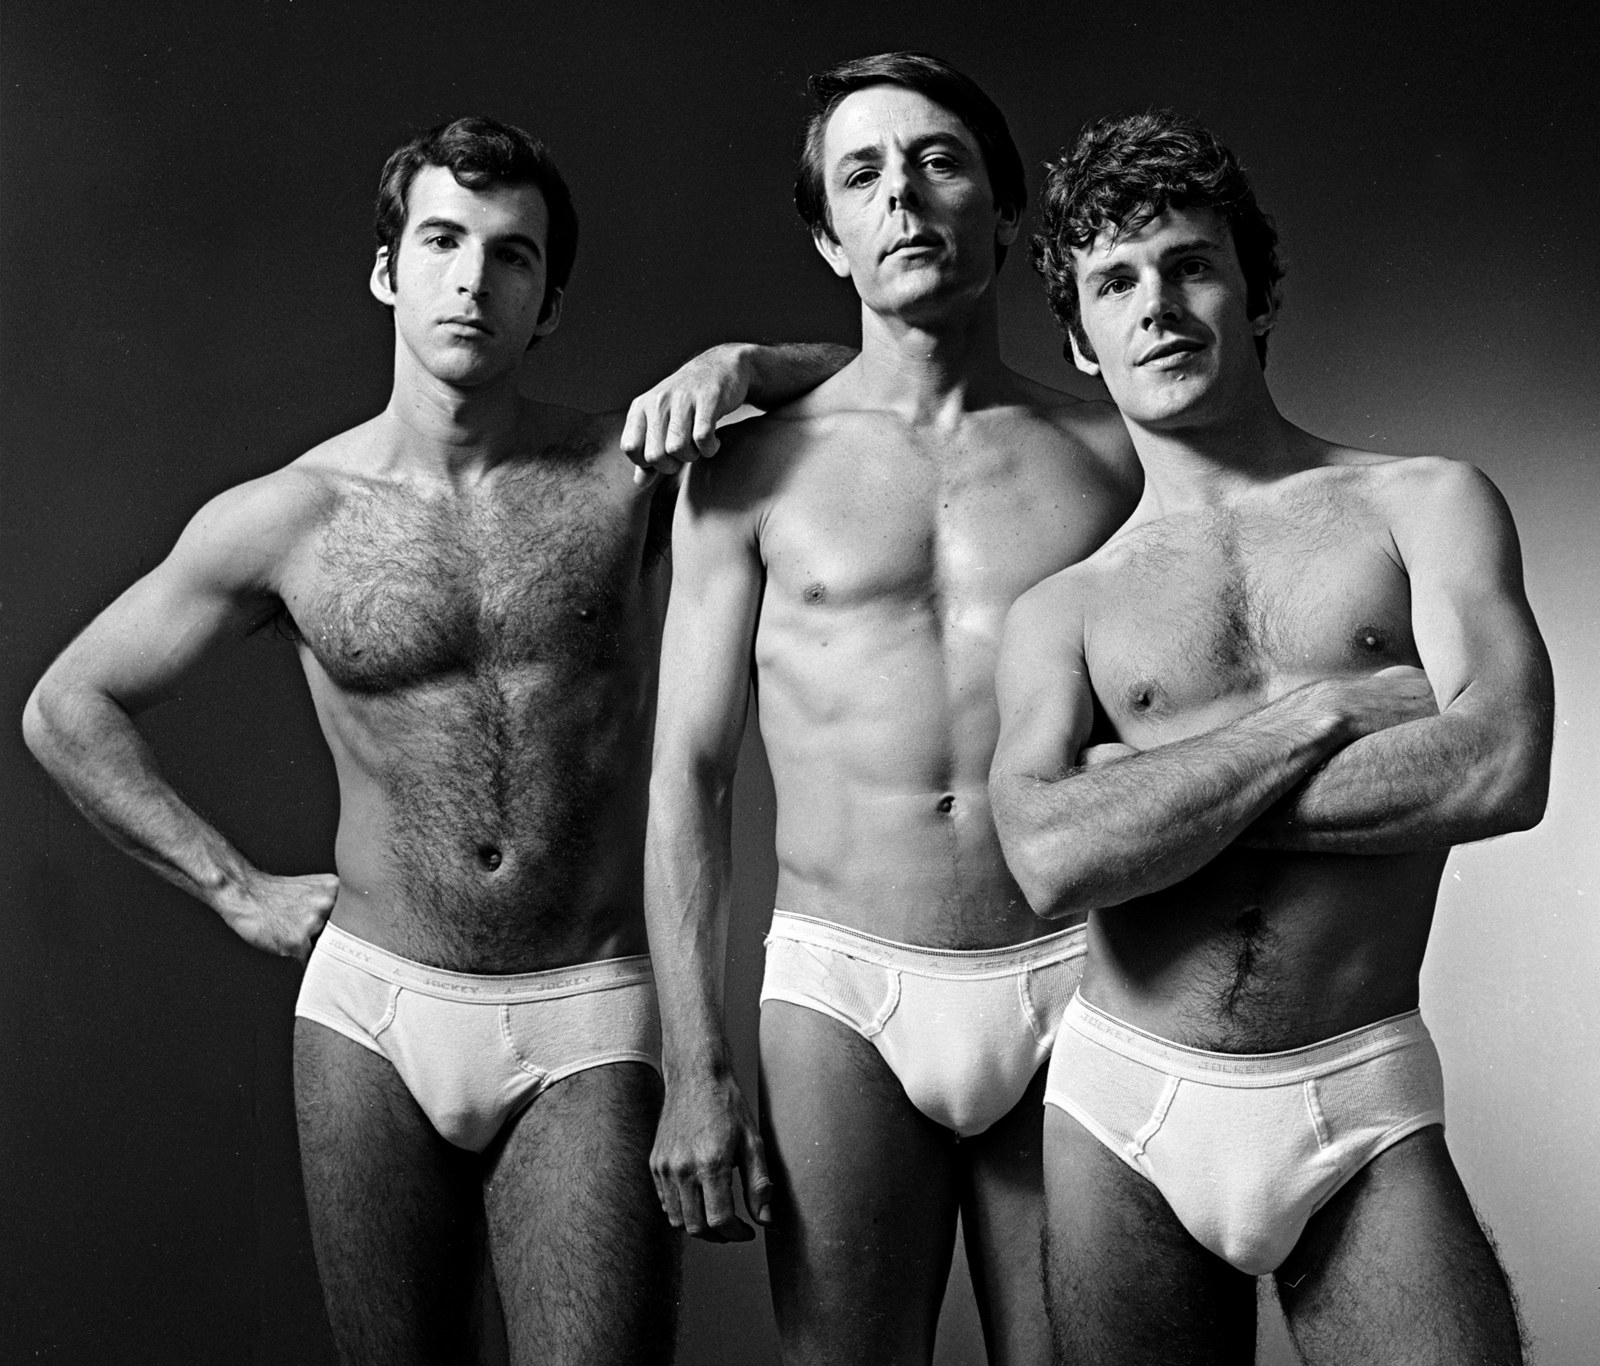 The cast of And Puppy Dog Tails, an off-Broadway gay liberation play, poses for a portrait during the 1969 theatrical season.